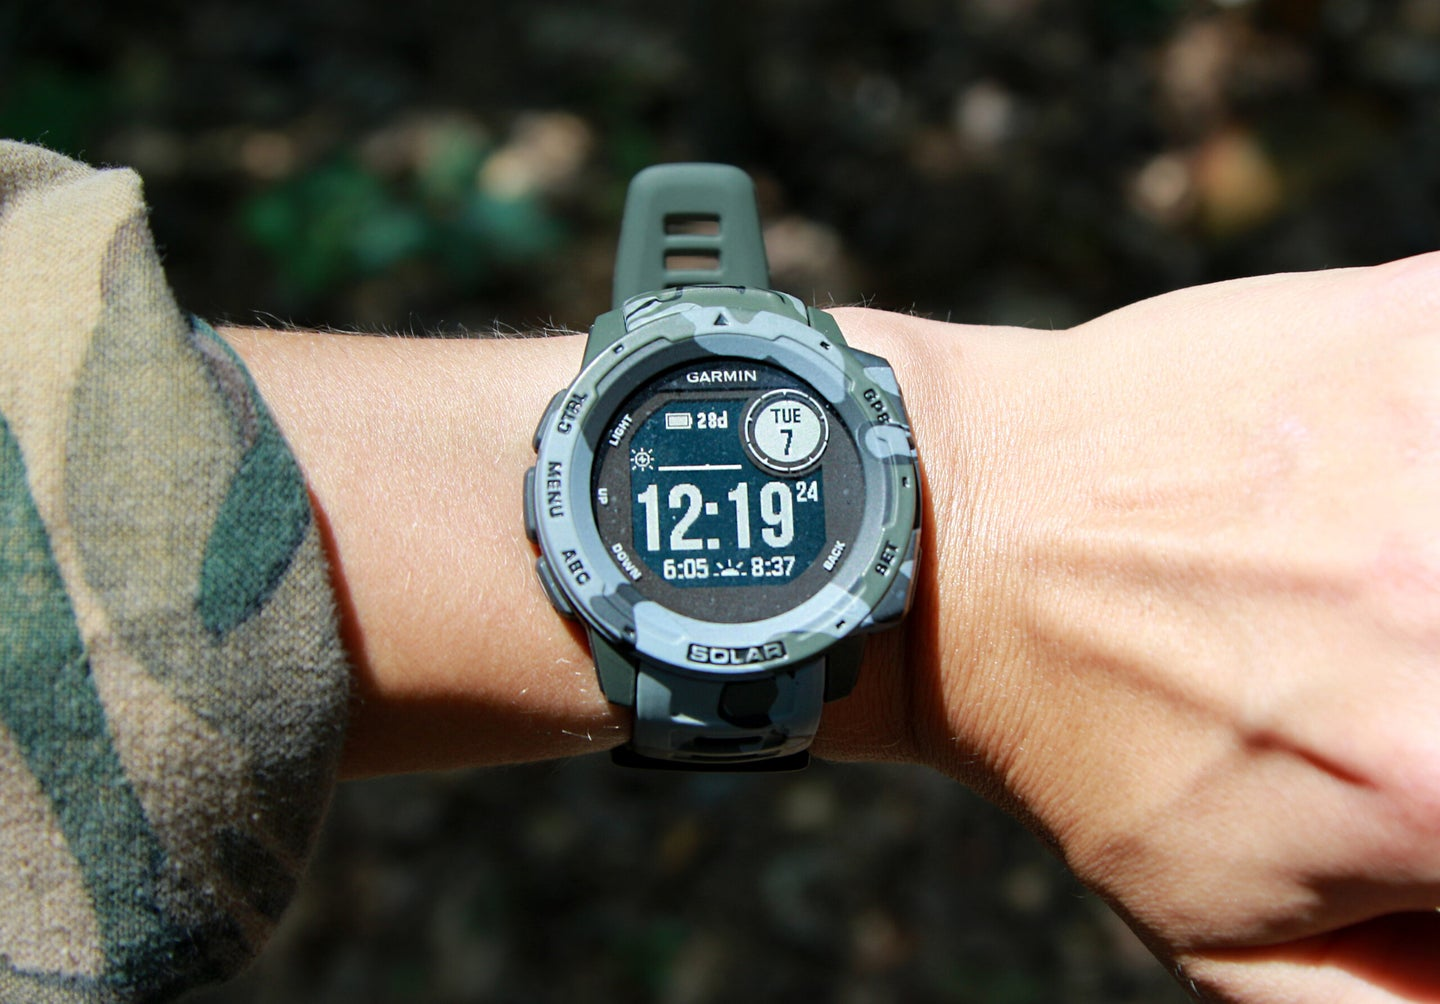 A large camo smart watch face on a wrist, in the sunshine.